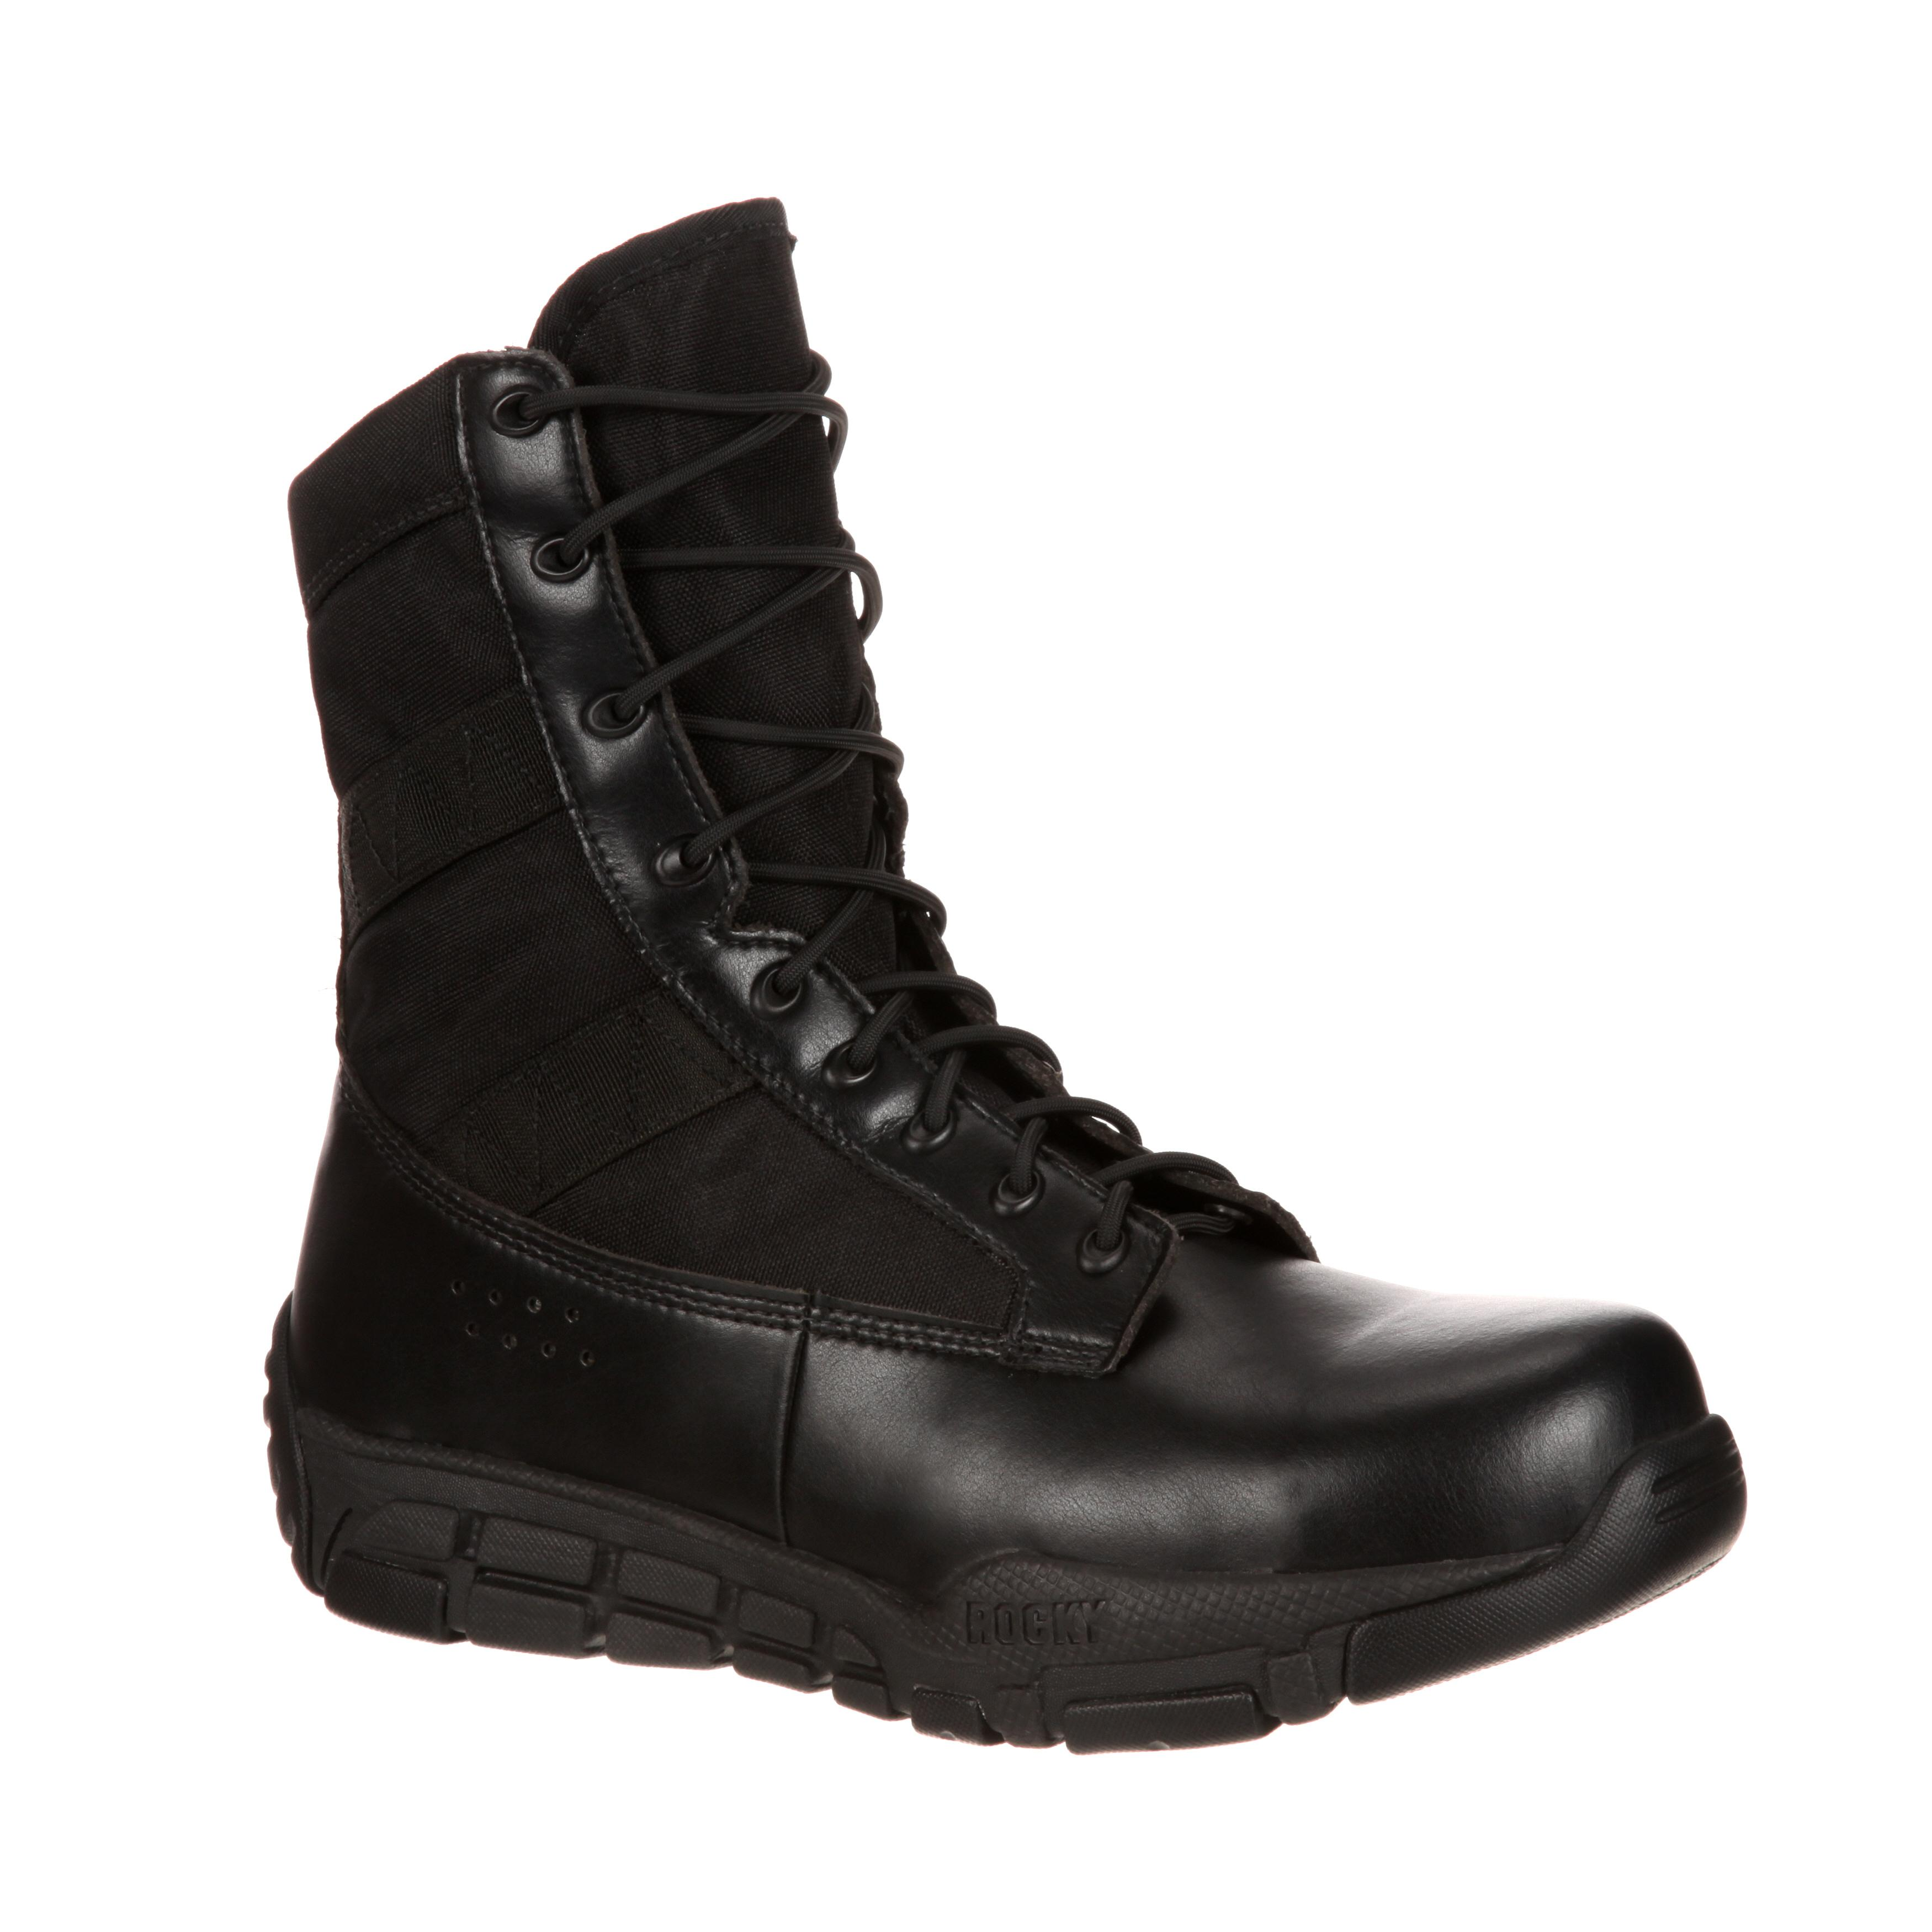 Rocky C4T Composite Toe Duty Boots, #RKYD020